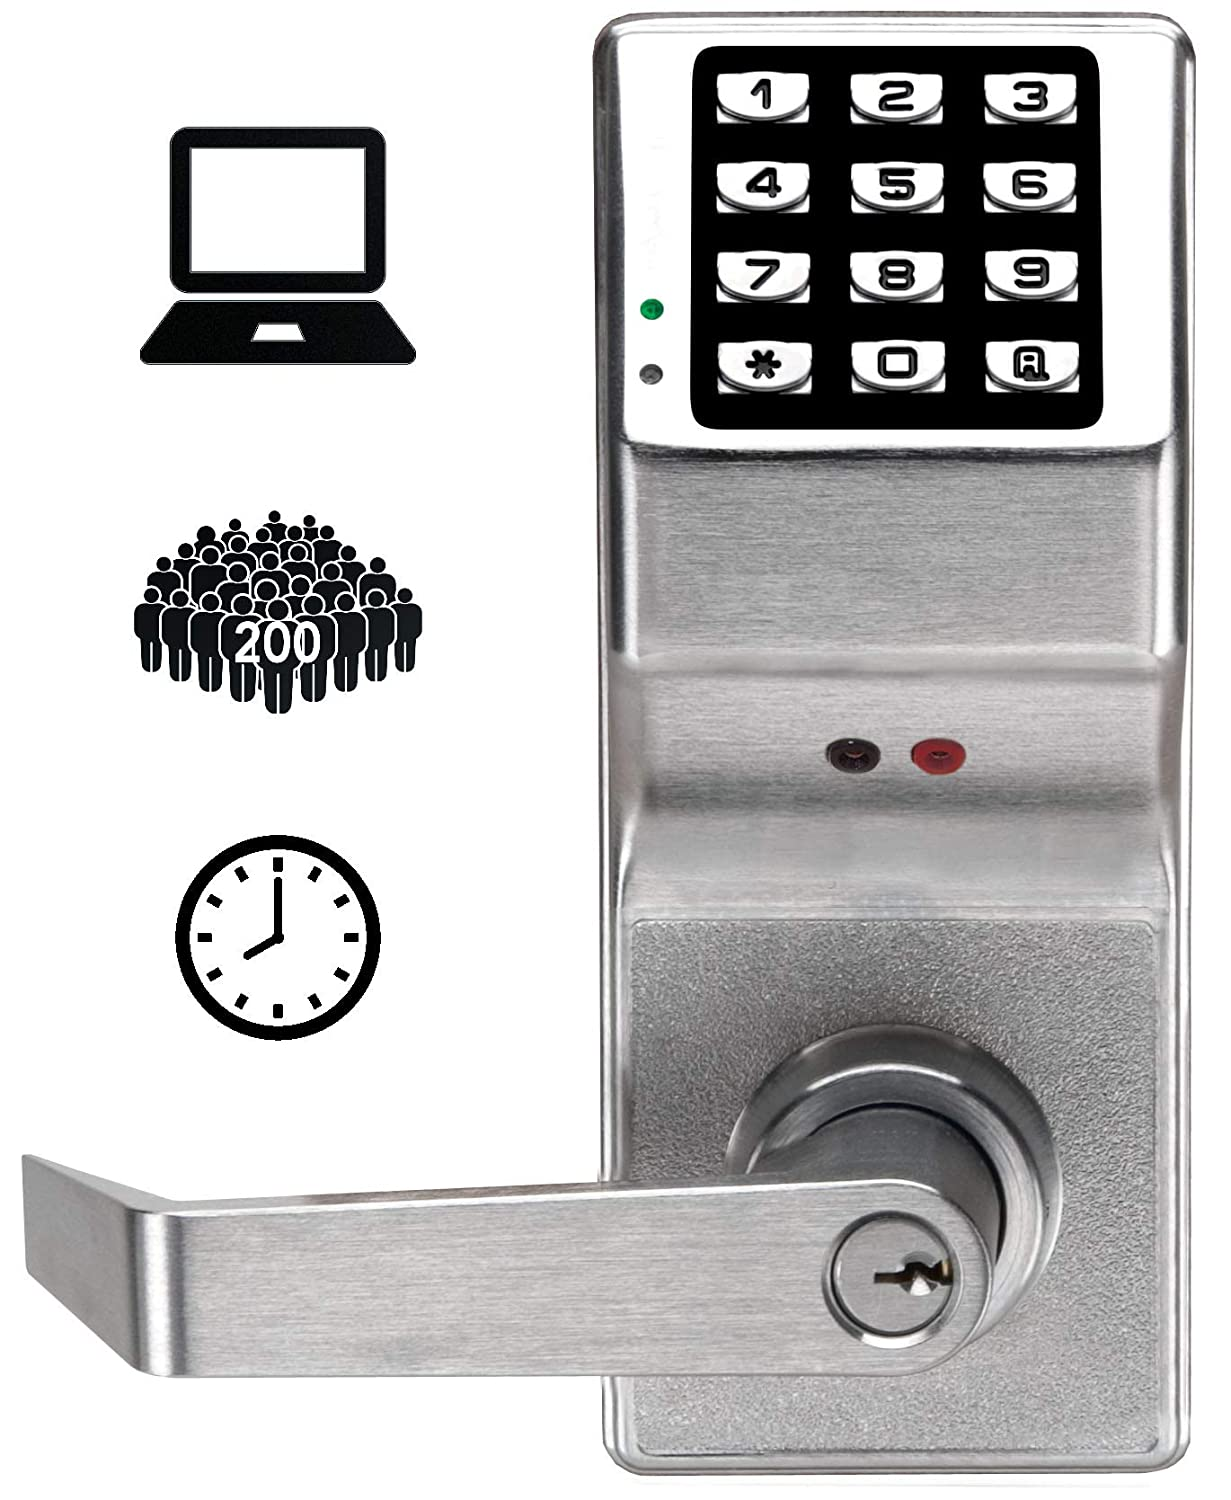 Image of Alarm Lock DL2800 US26D Trilogy Digital Lock Cylindrical 26D, Satin Chrome Access-Control Keypads